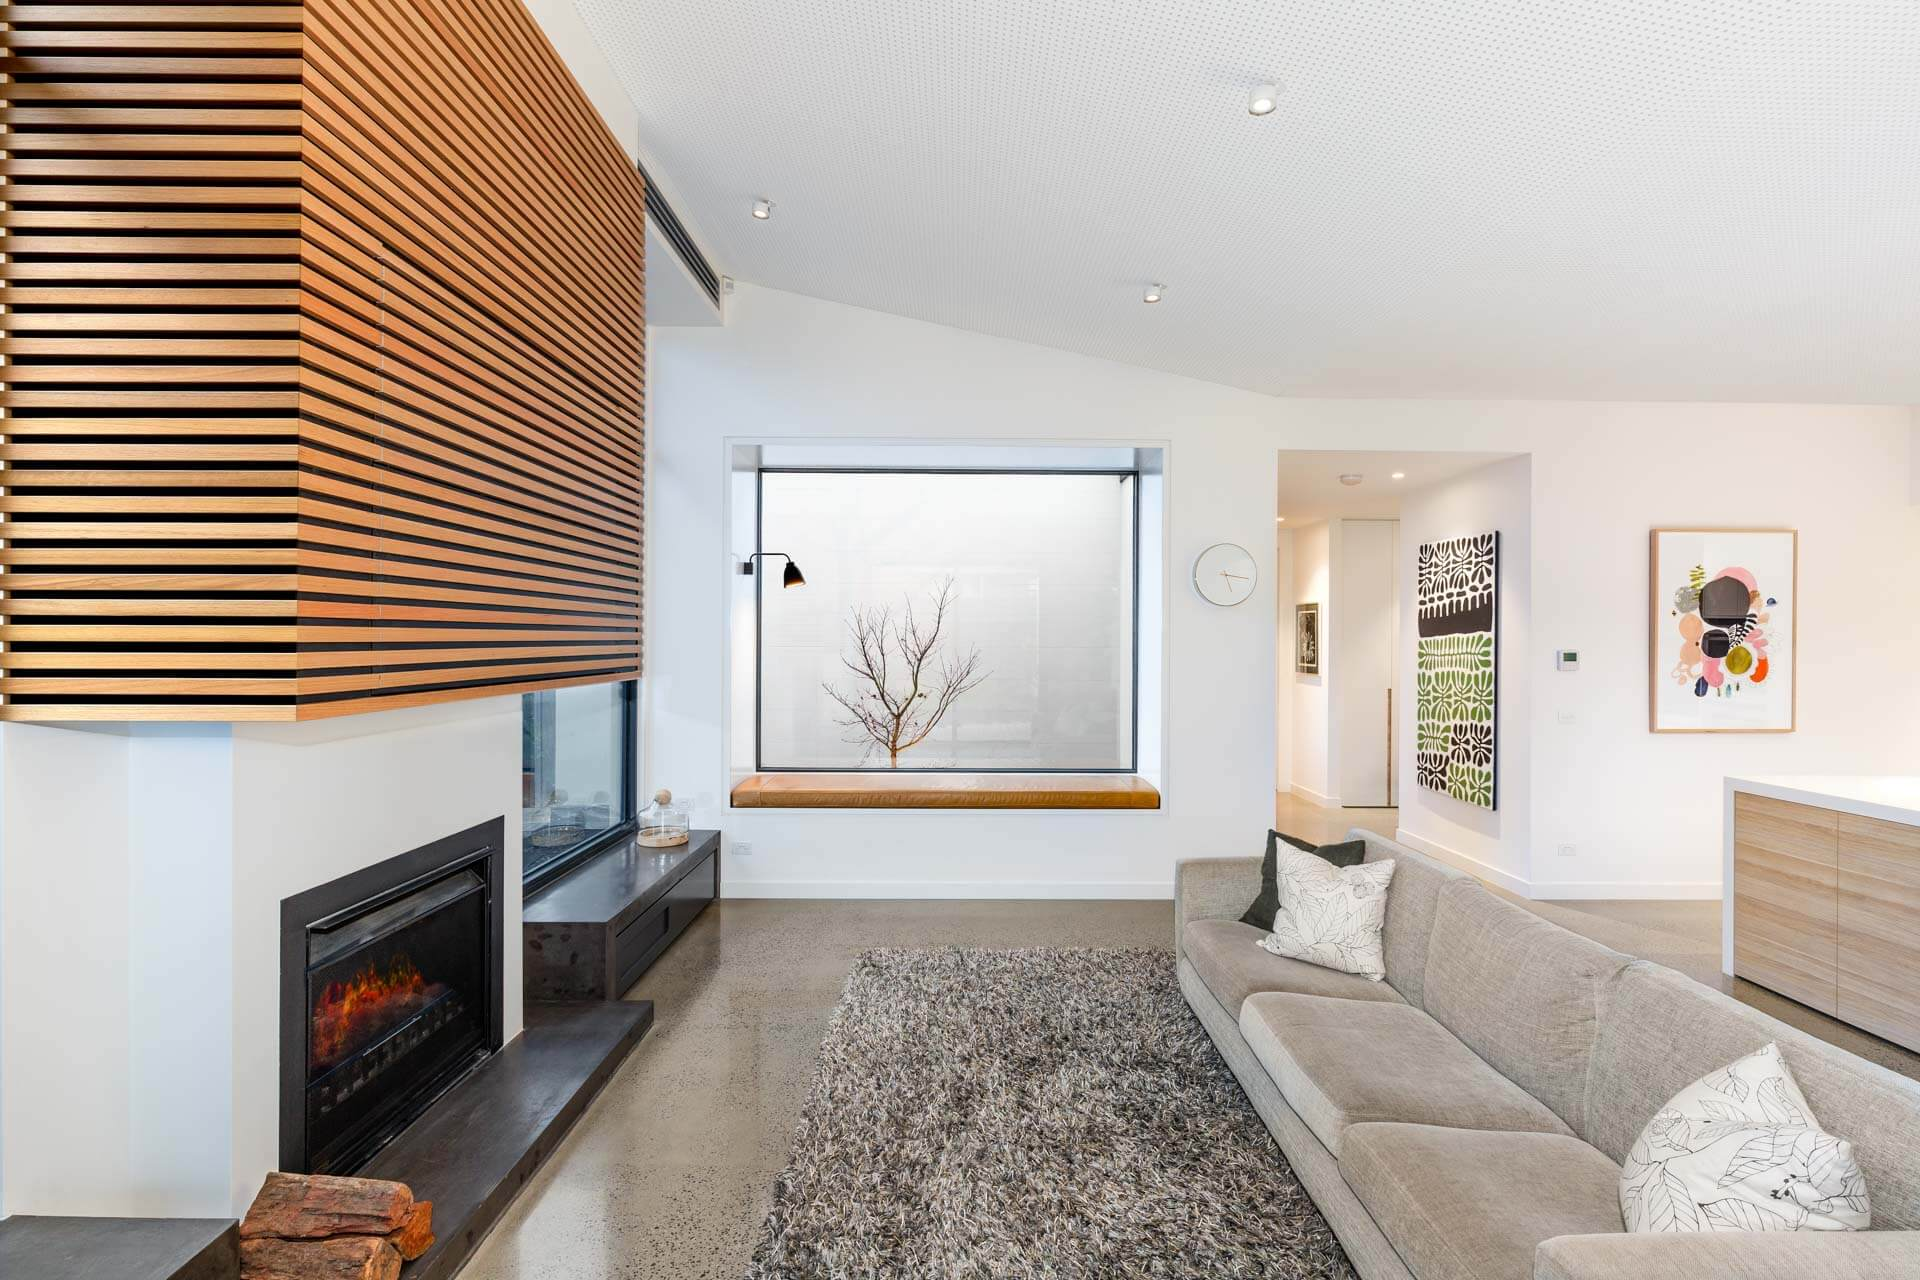 Renovated custom designed lounge area with sofa chair and fire place feature wall and polished concrete floor and perforated ceiling Architectural Photography Roger Thompson Photography